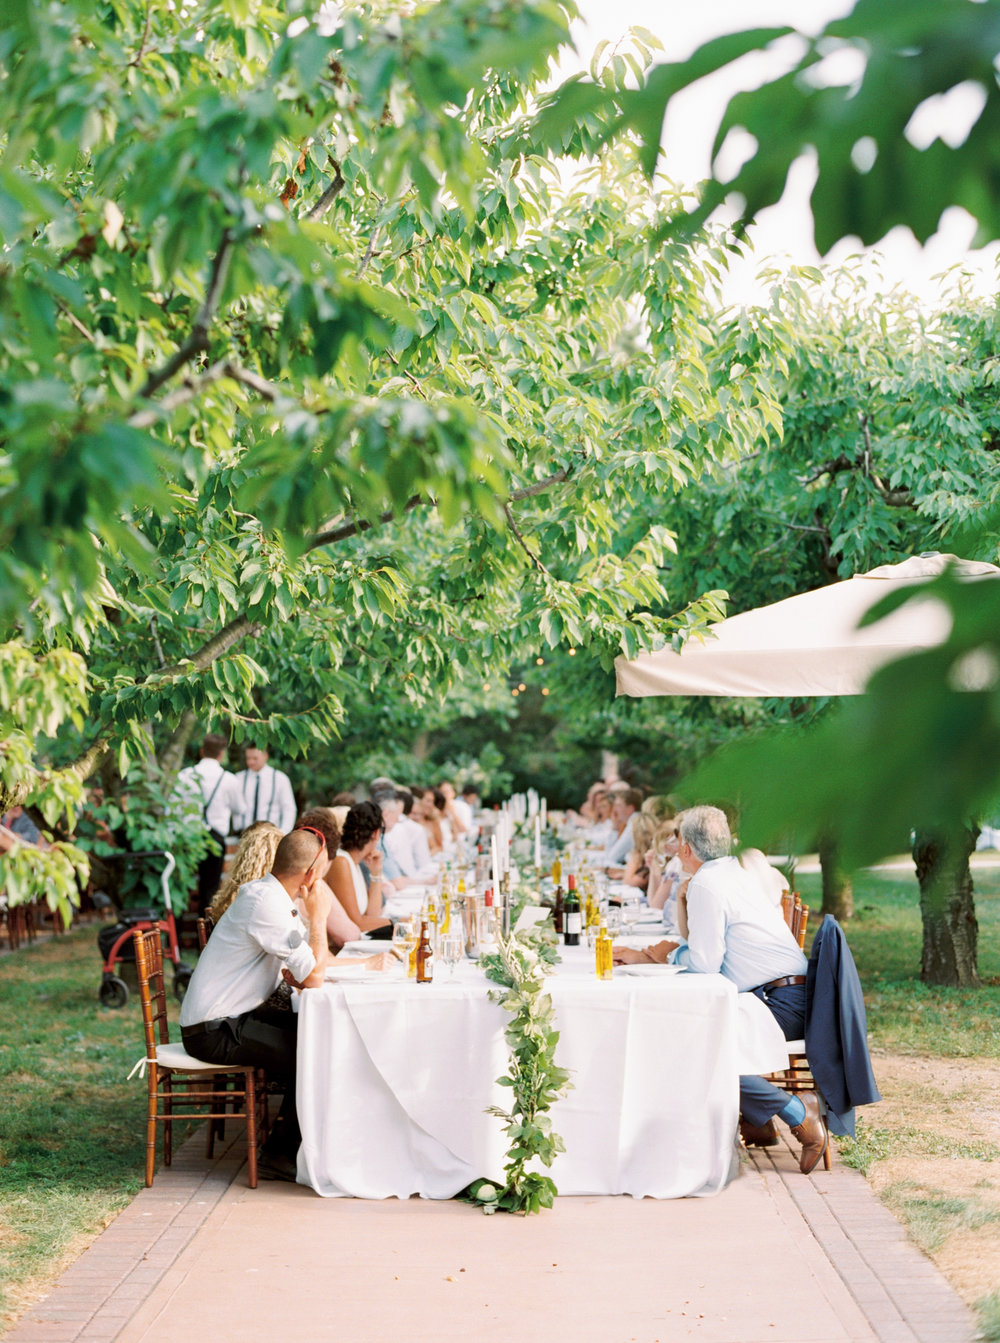 gracewood-kurtz-orchards-toronto-wedding-photographer-kurtz-film-richelle-hunter-cassandra-zac-dalpe-previews-25.jpg